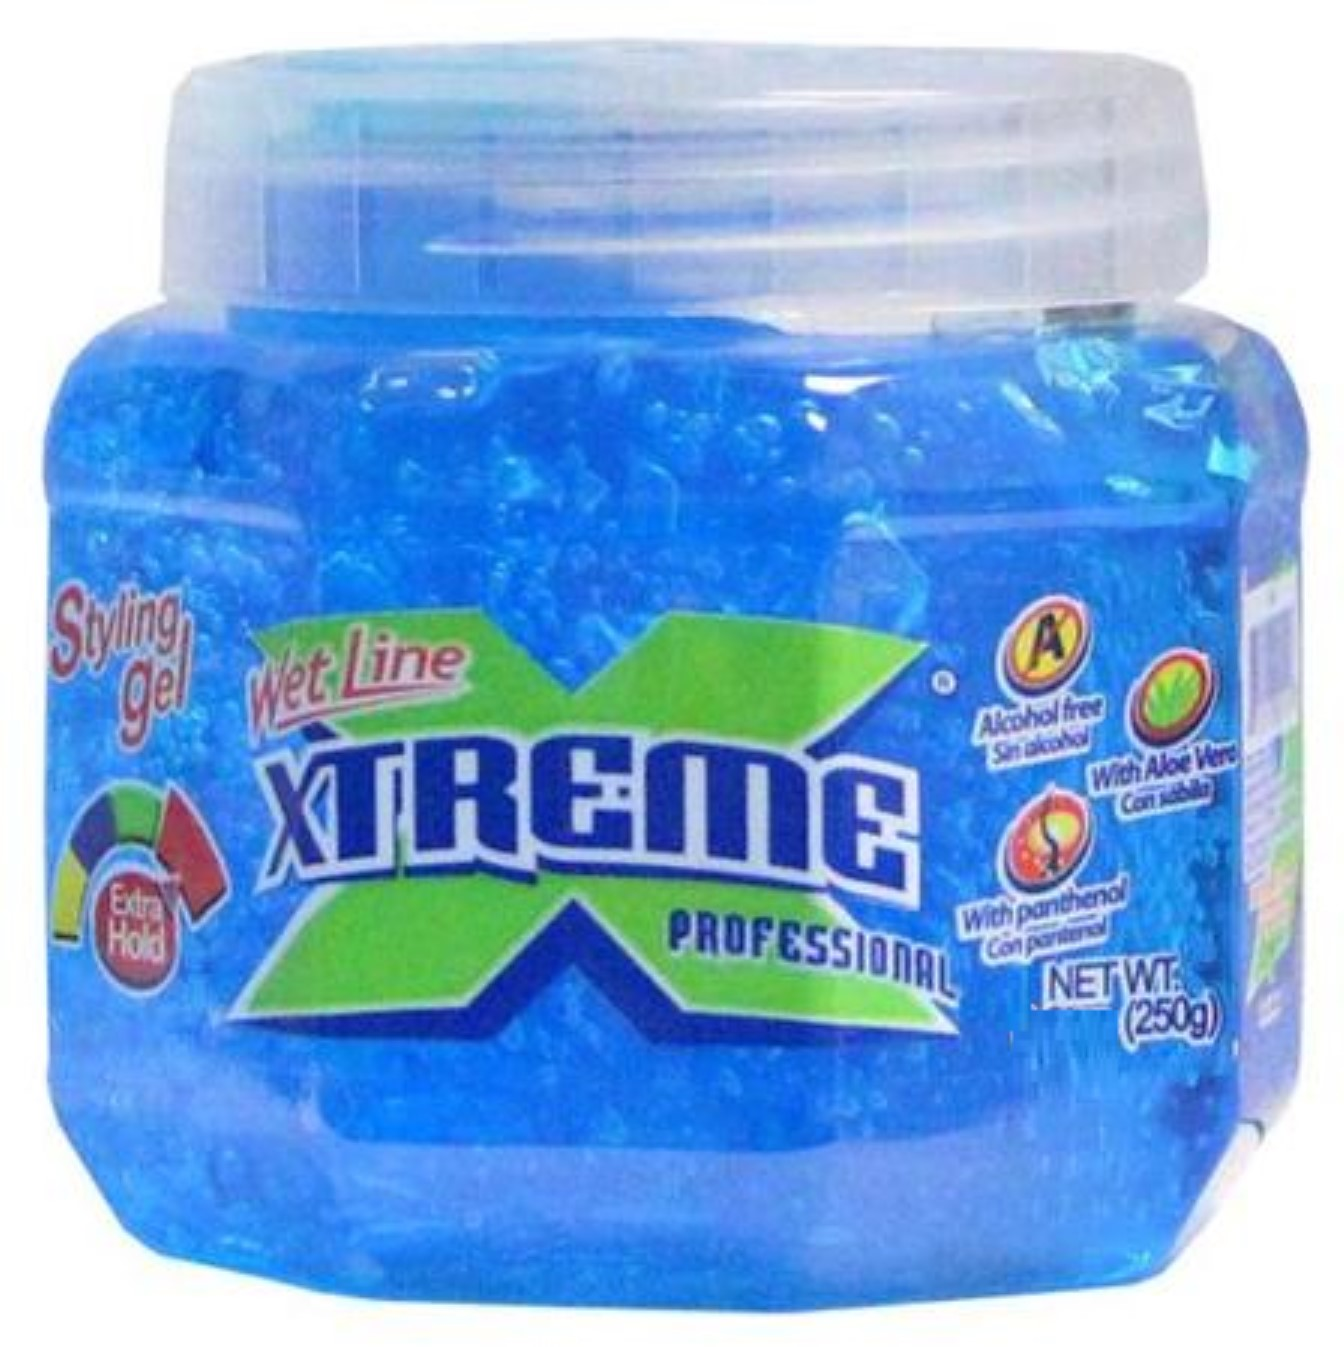 Xtreme Professional Wet Line Styling Gel Extra Hold Blue, 15.75 oz (Pack of 6)